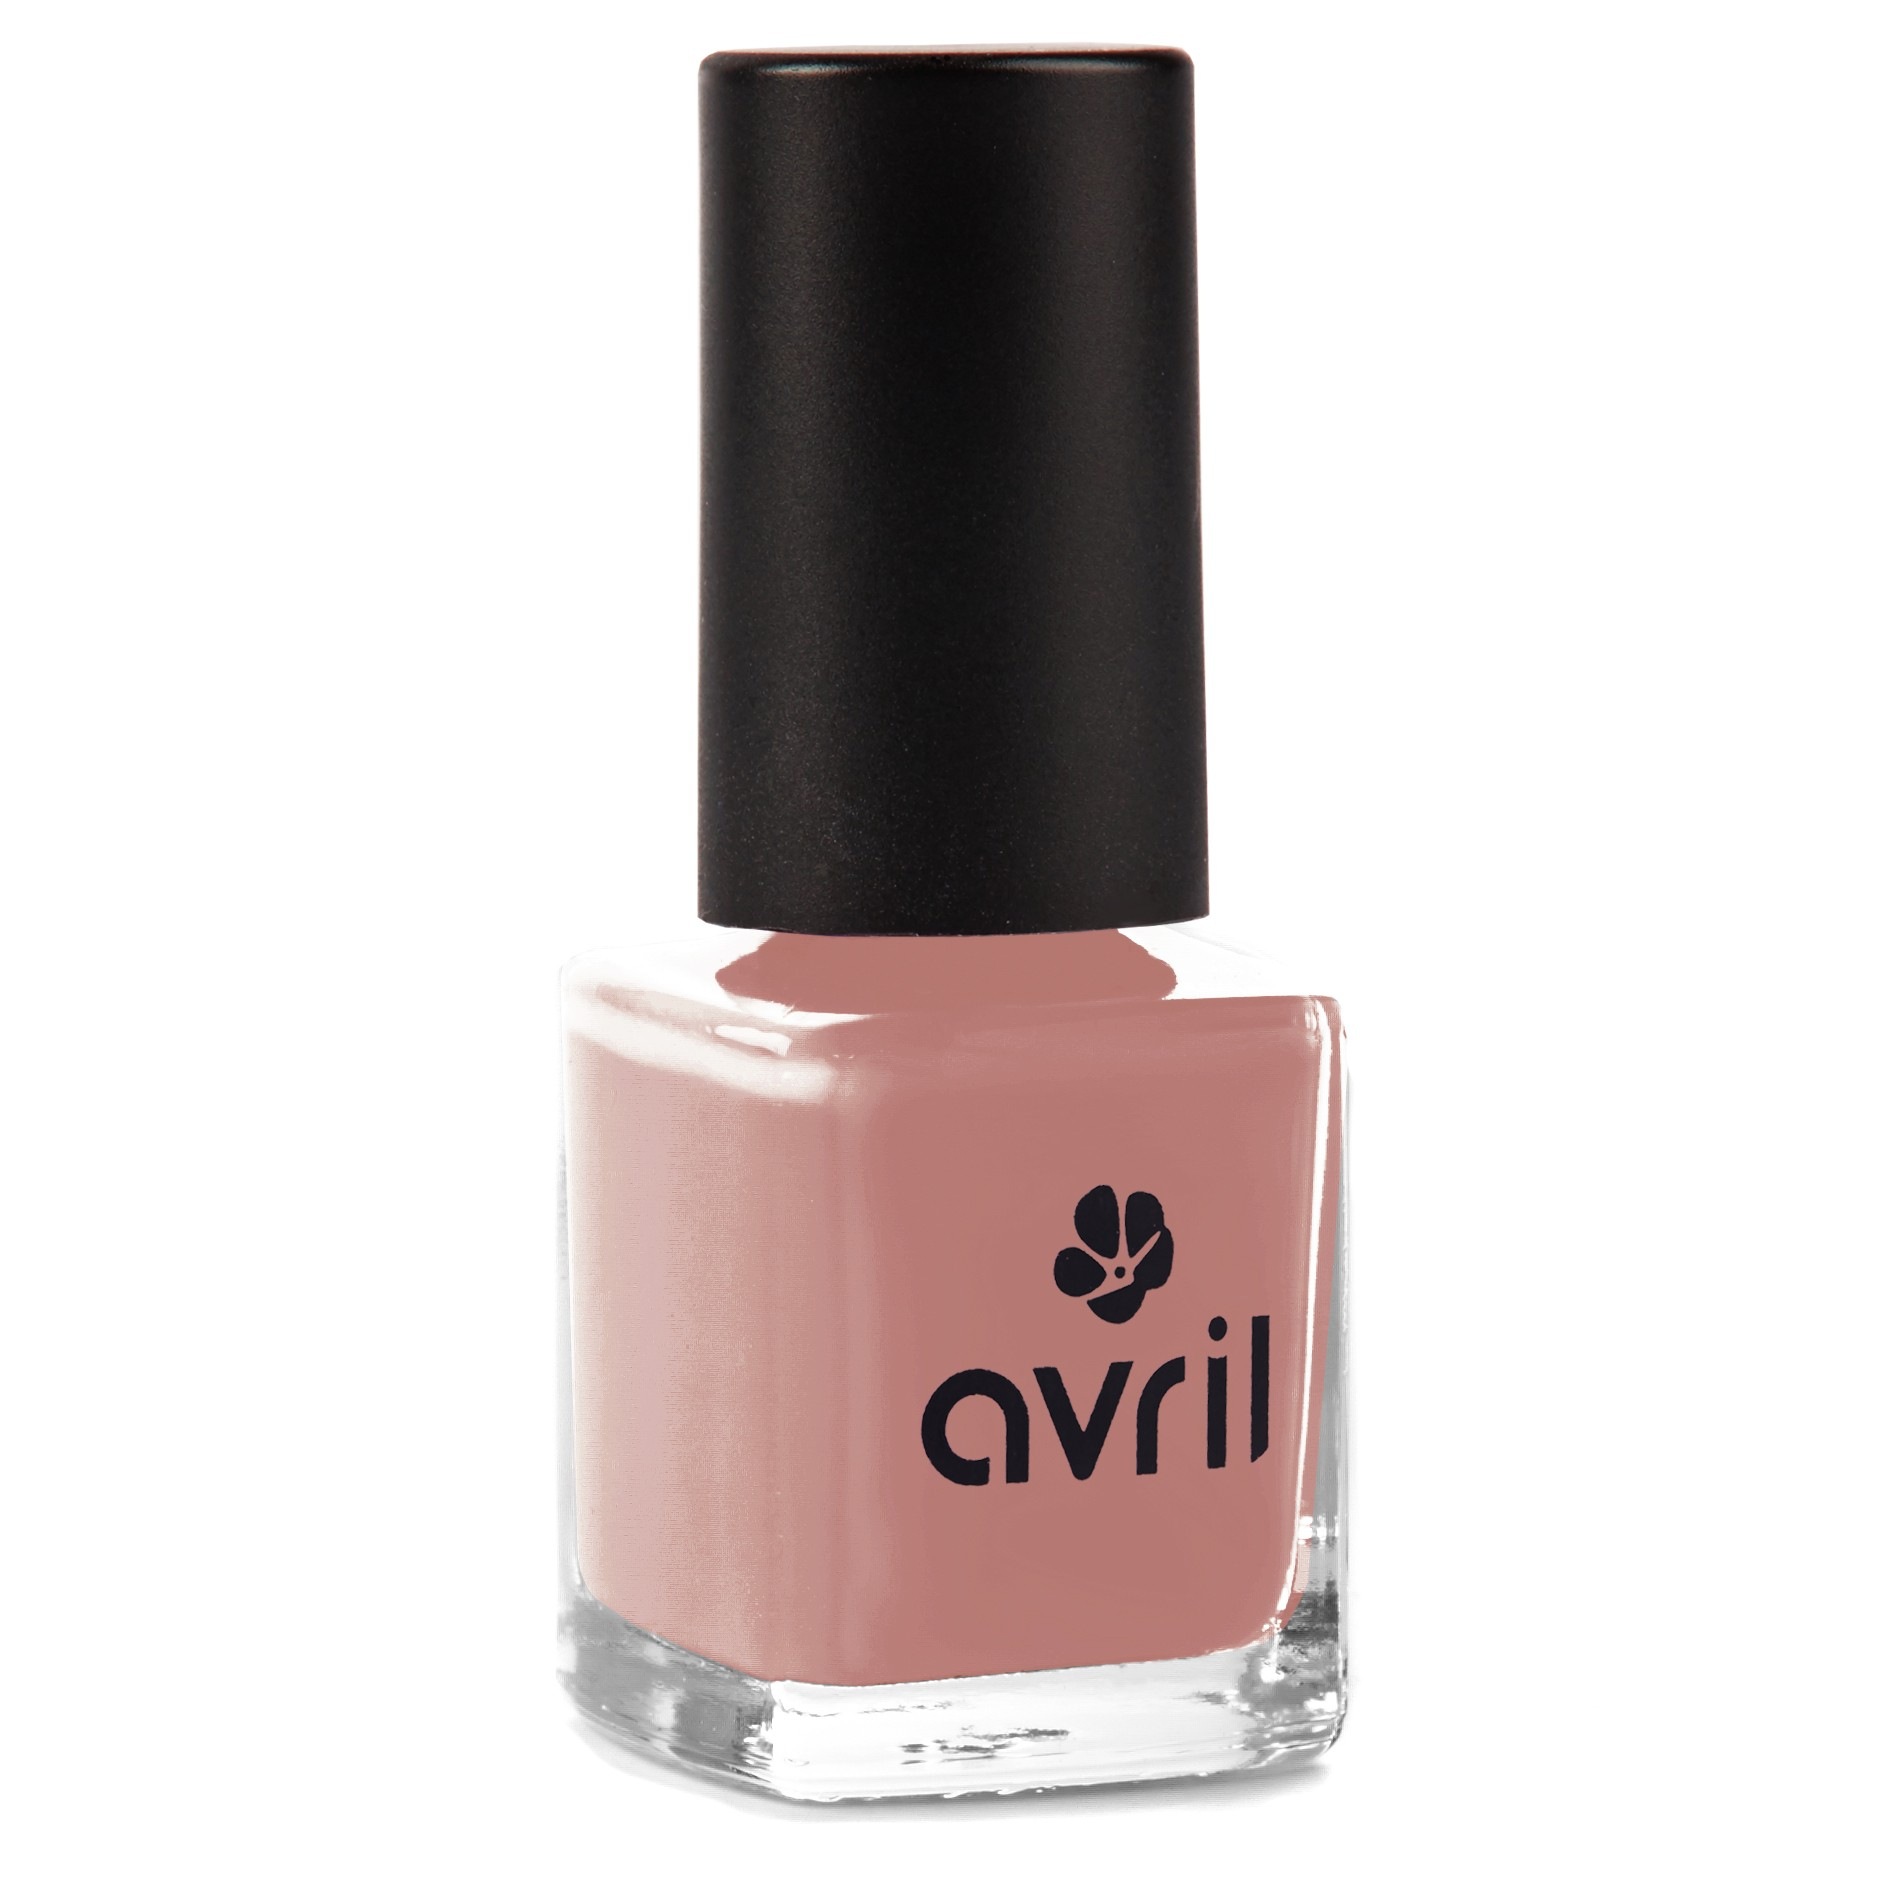 Nude nail polish not tested on animals